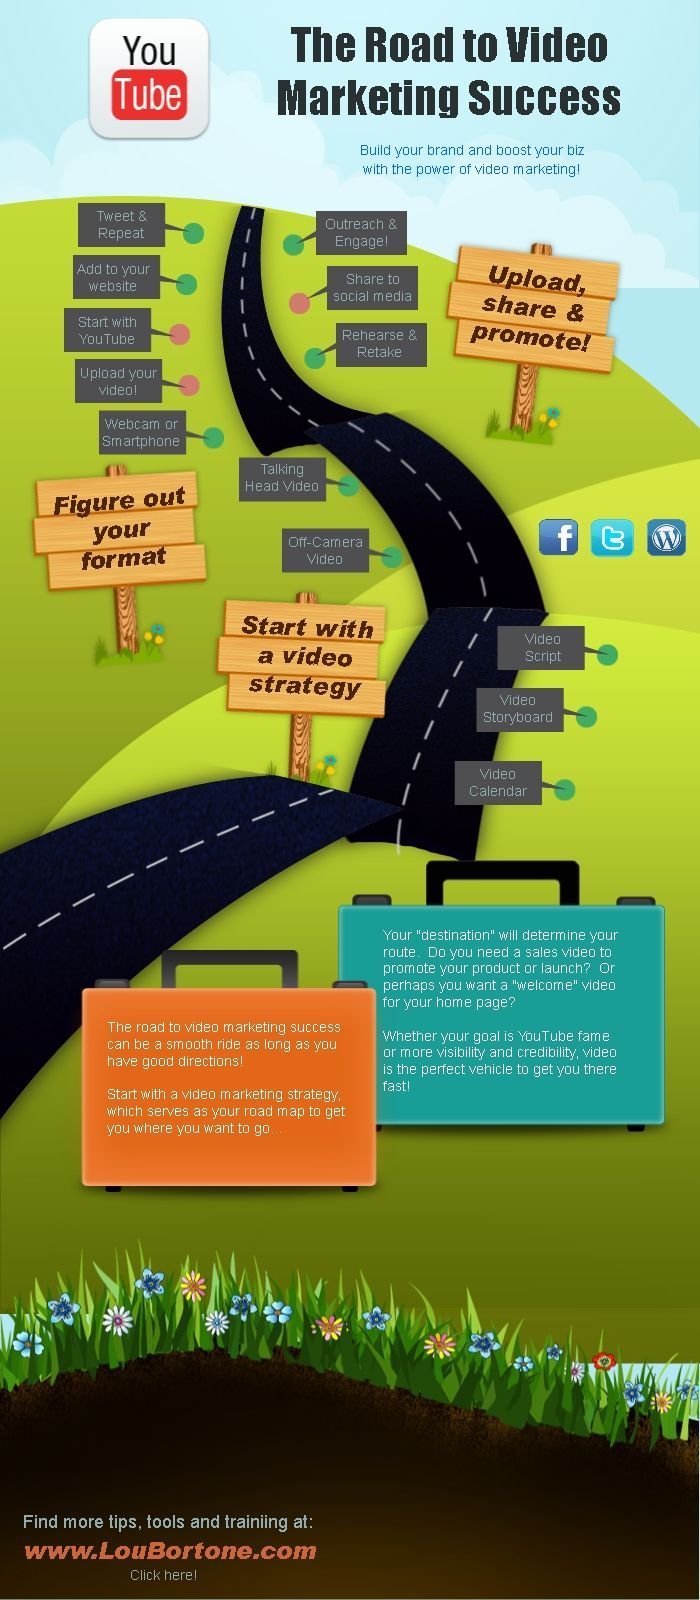 The Road to Video Marketing Success